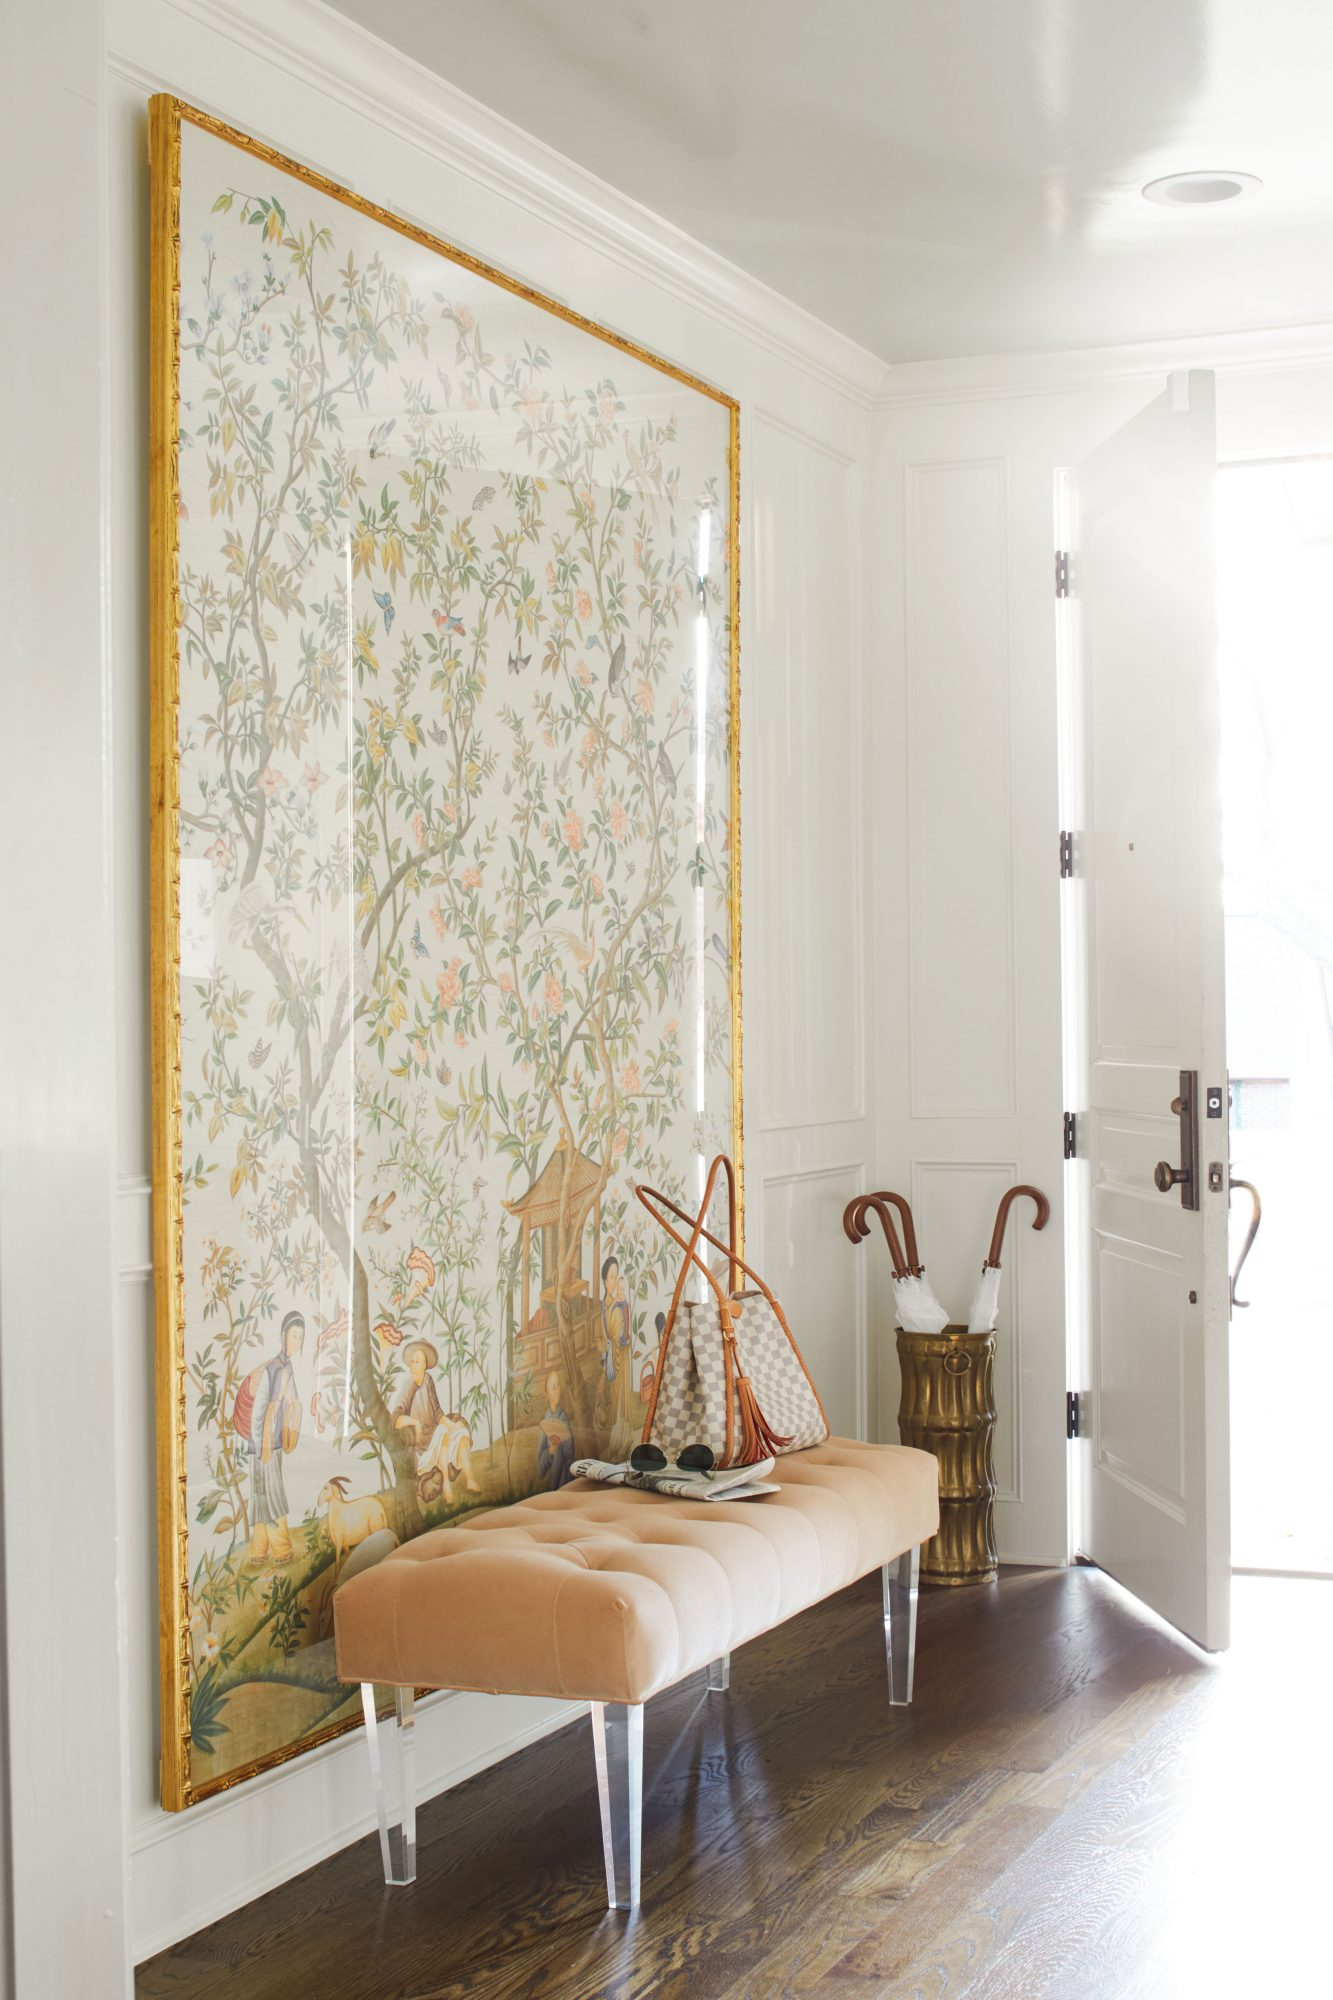 Entry with framed wallpaper panel